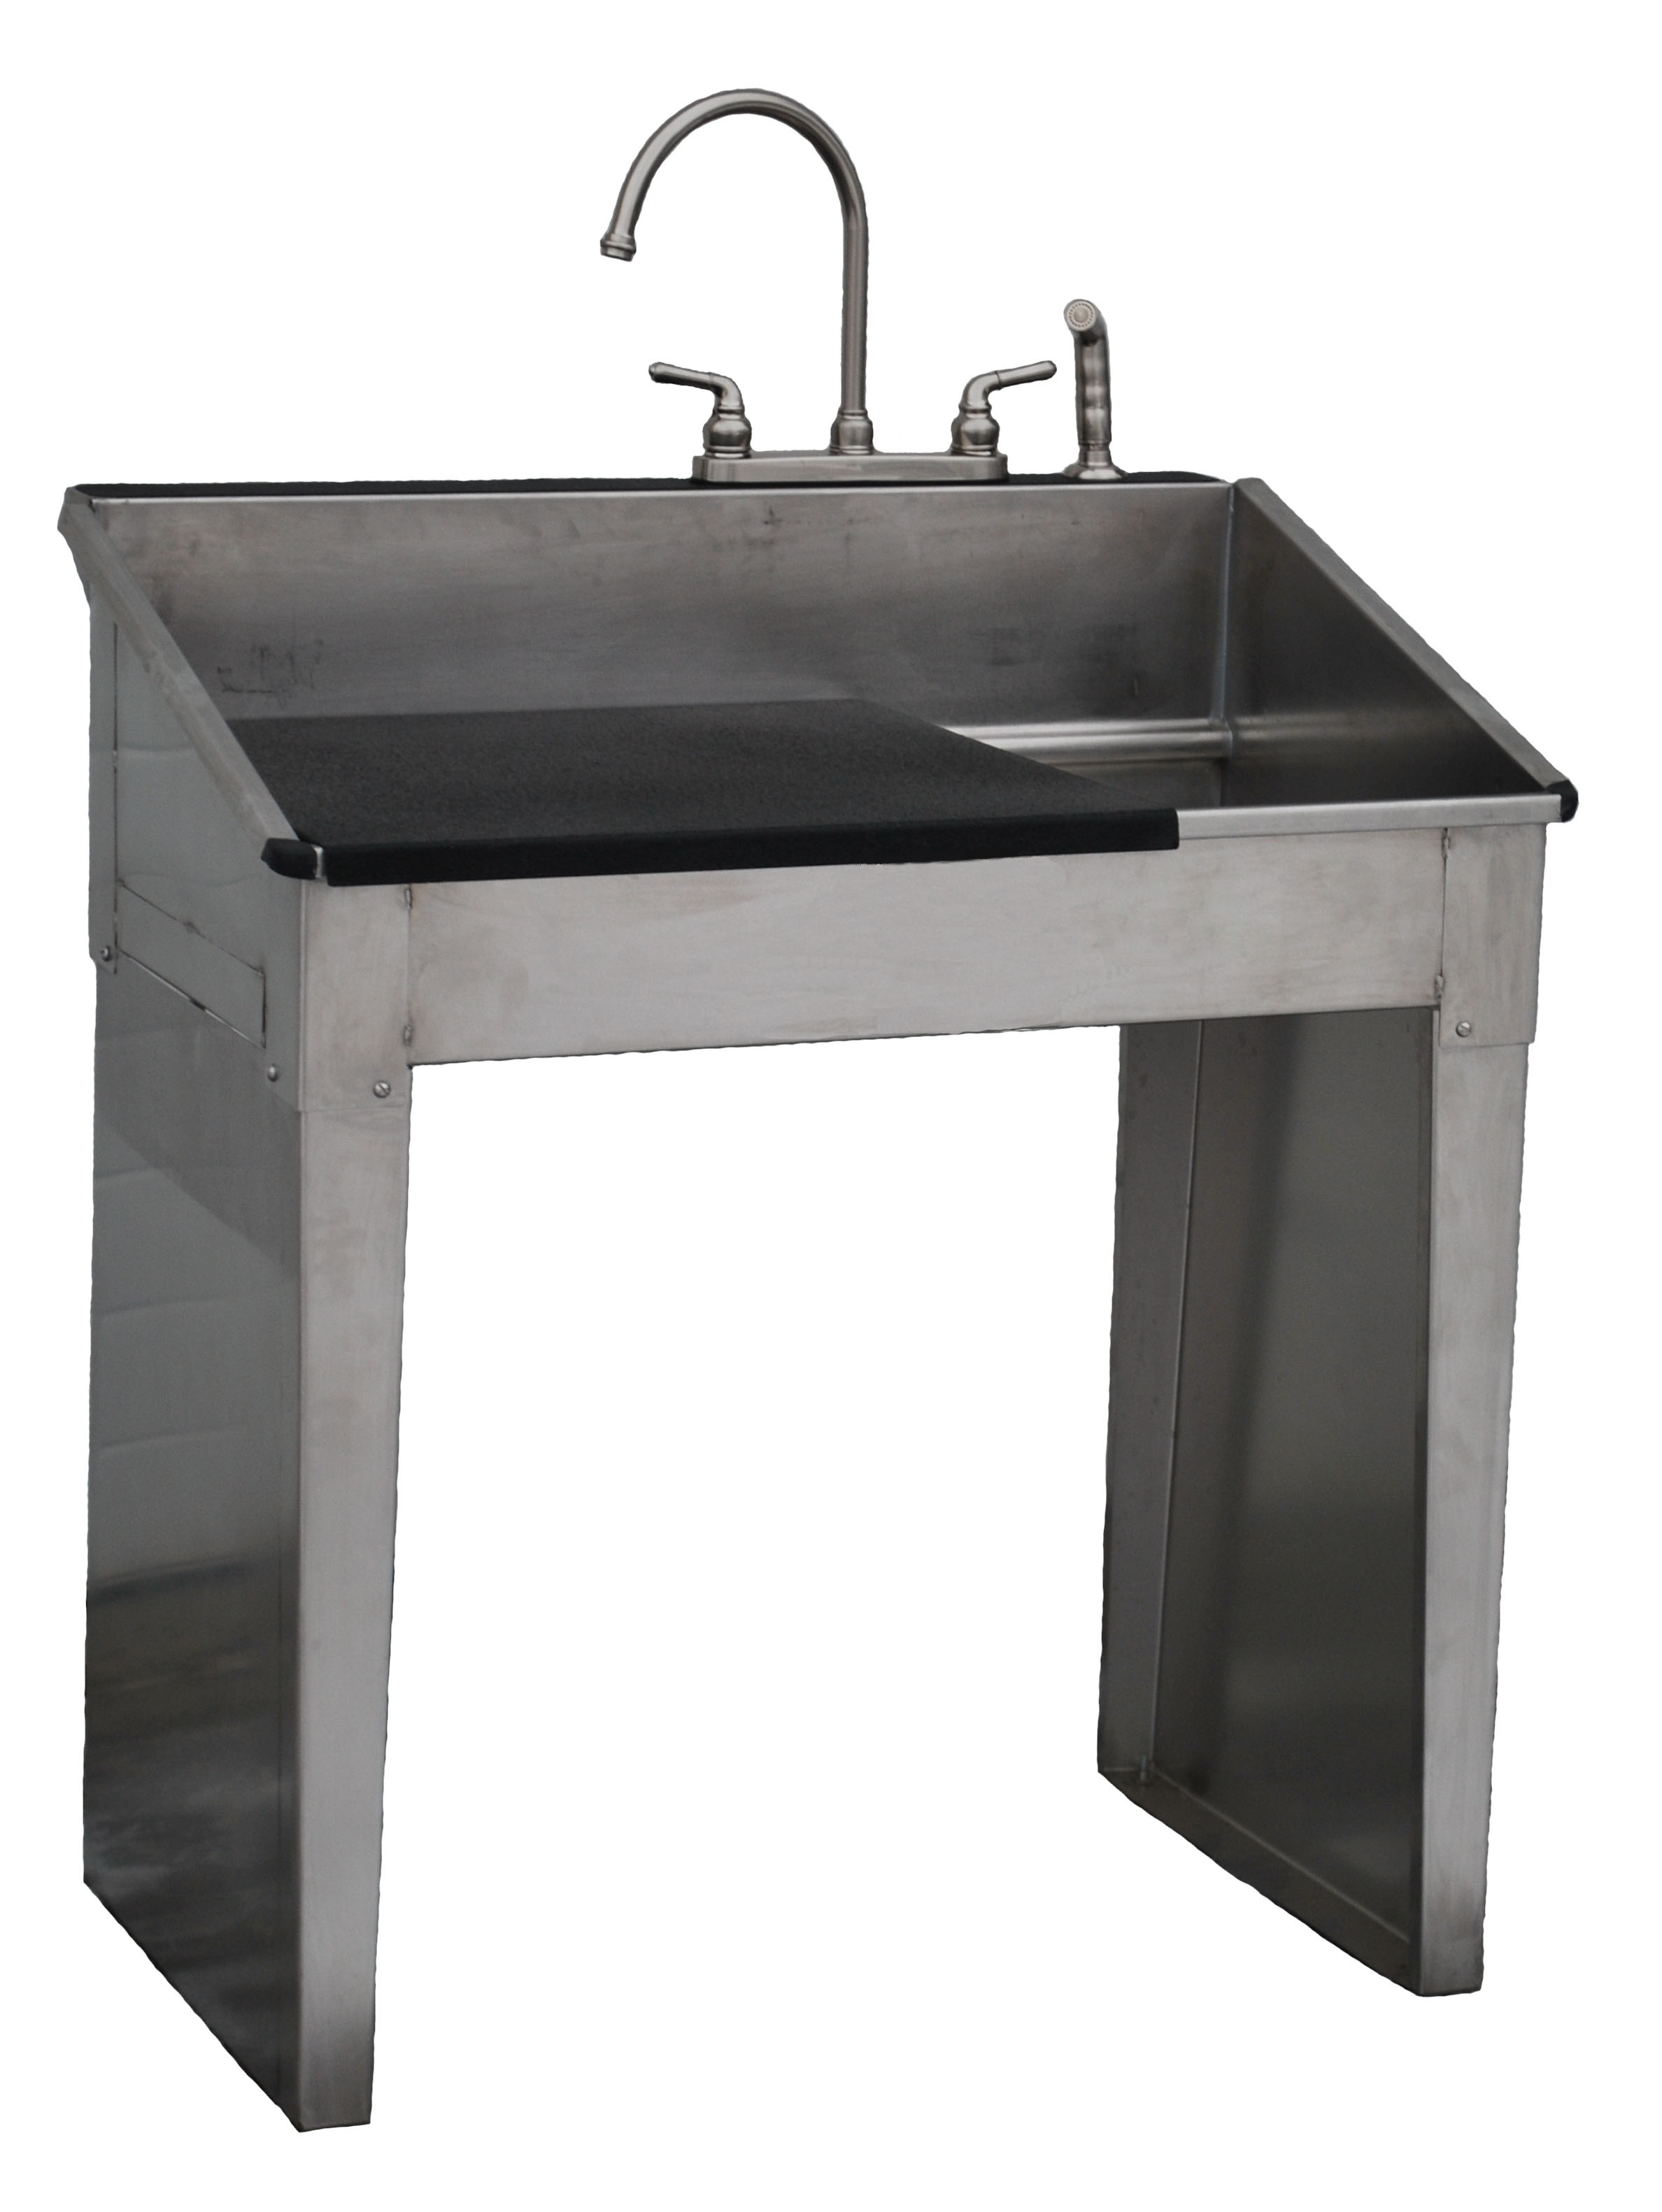 Best Utility Sink Stainless steel Utility Sinks